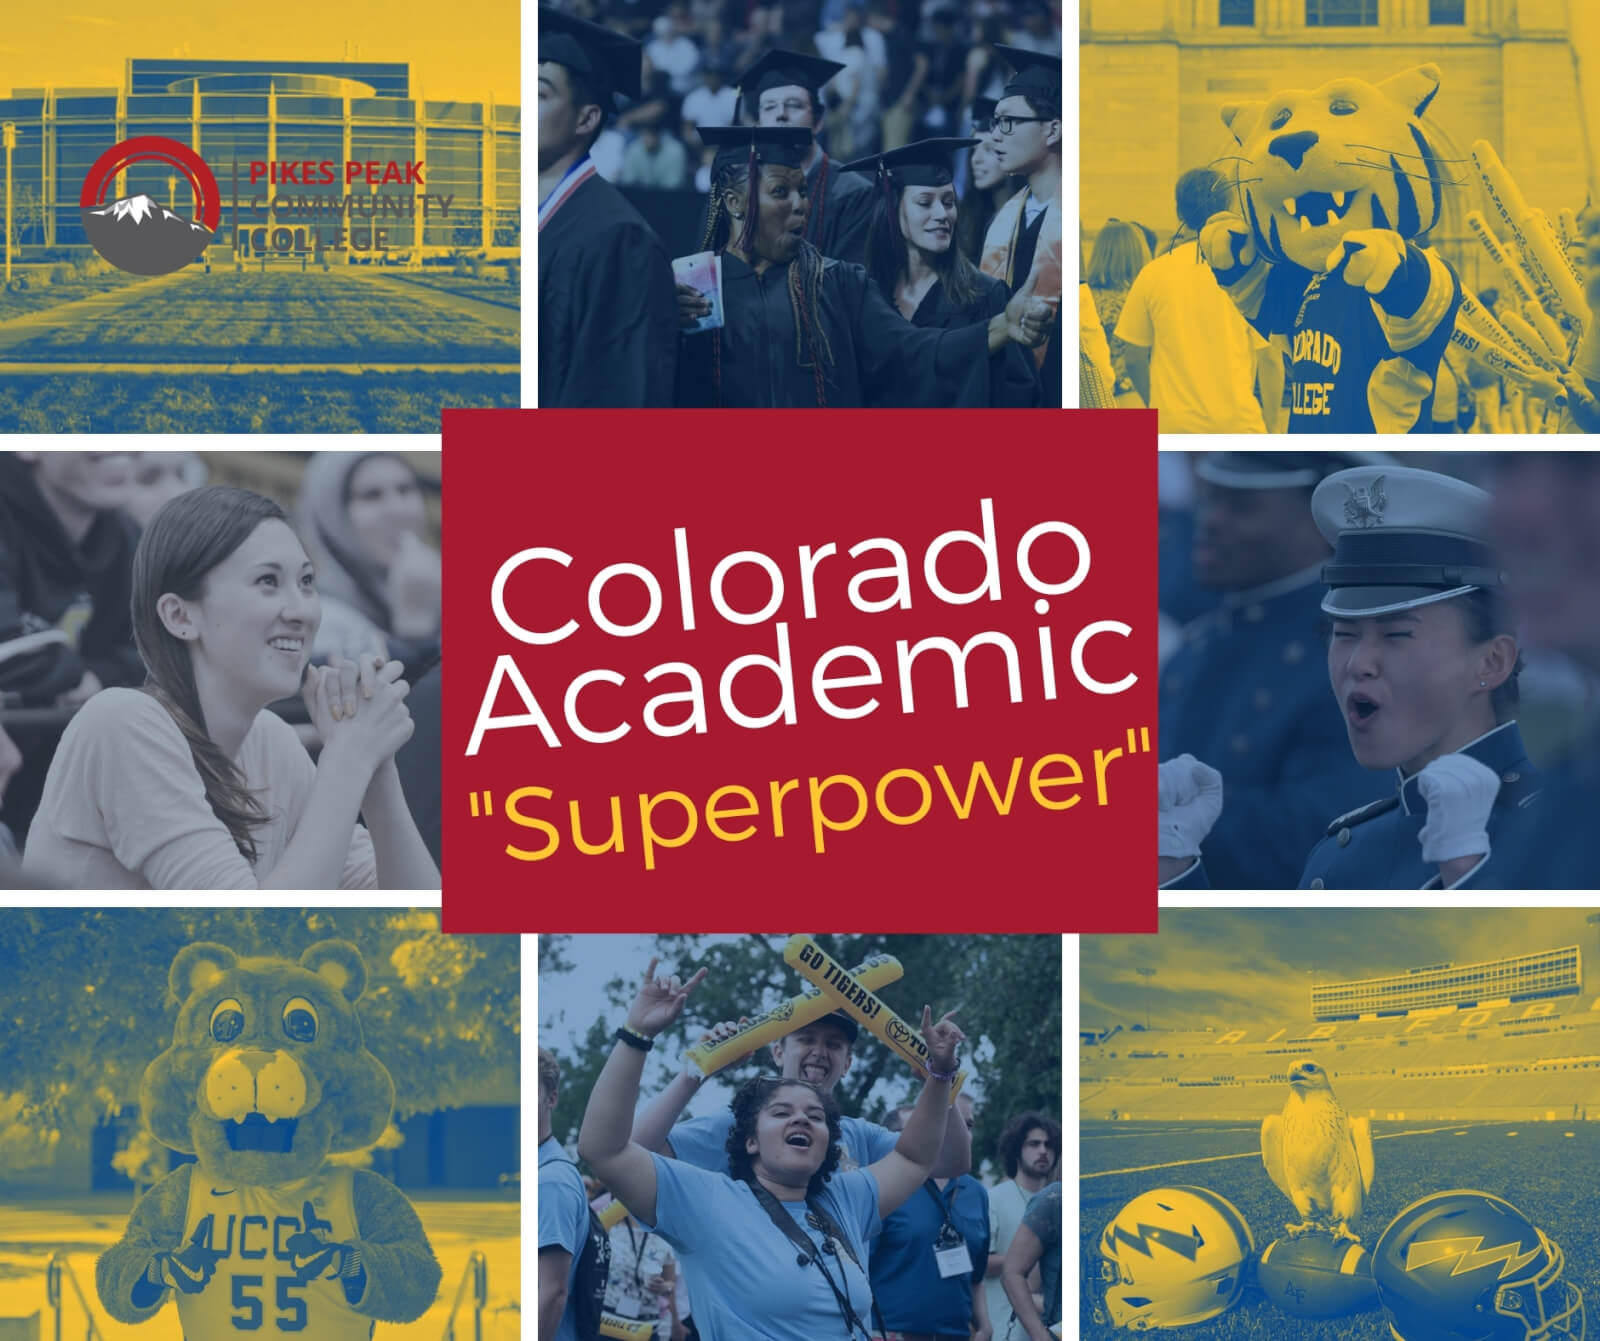 Academy, local colleges combine to create academic 'superpower'